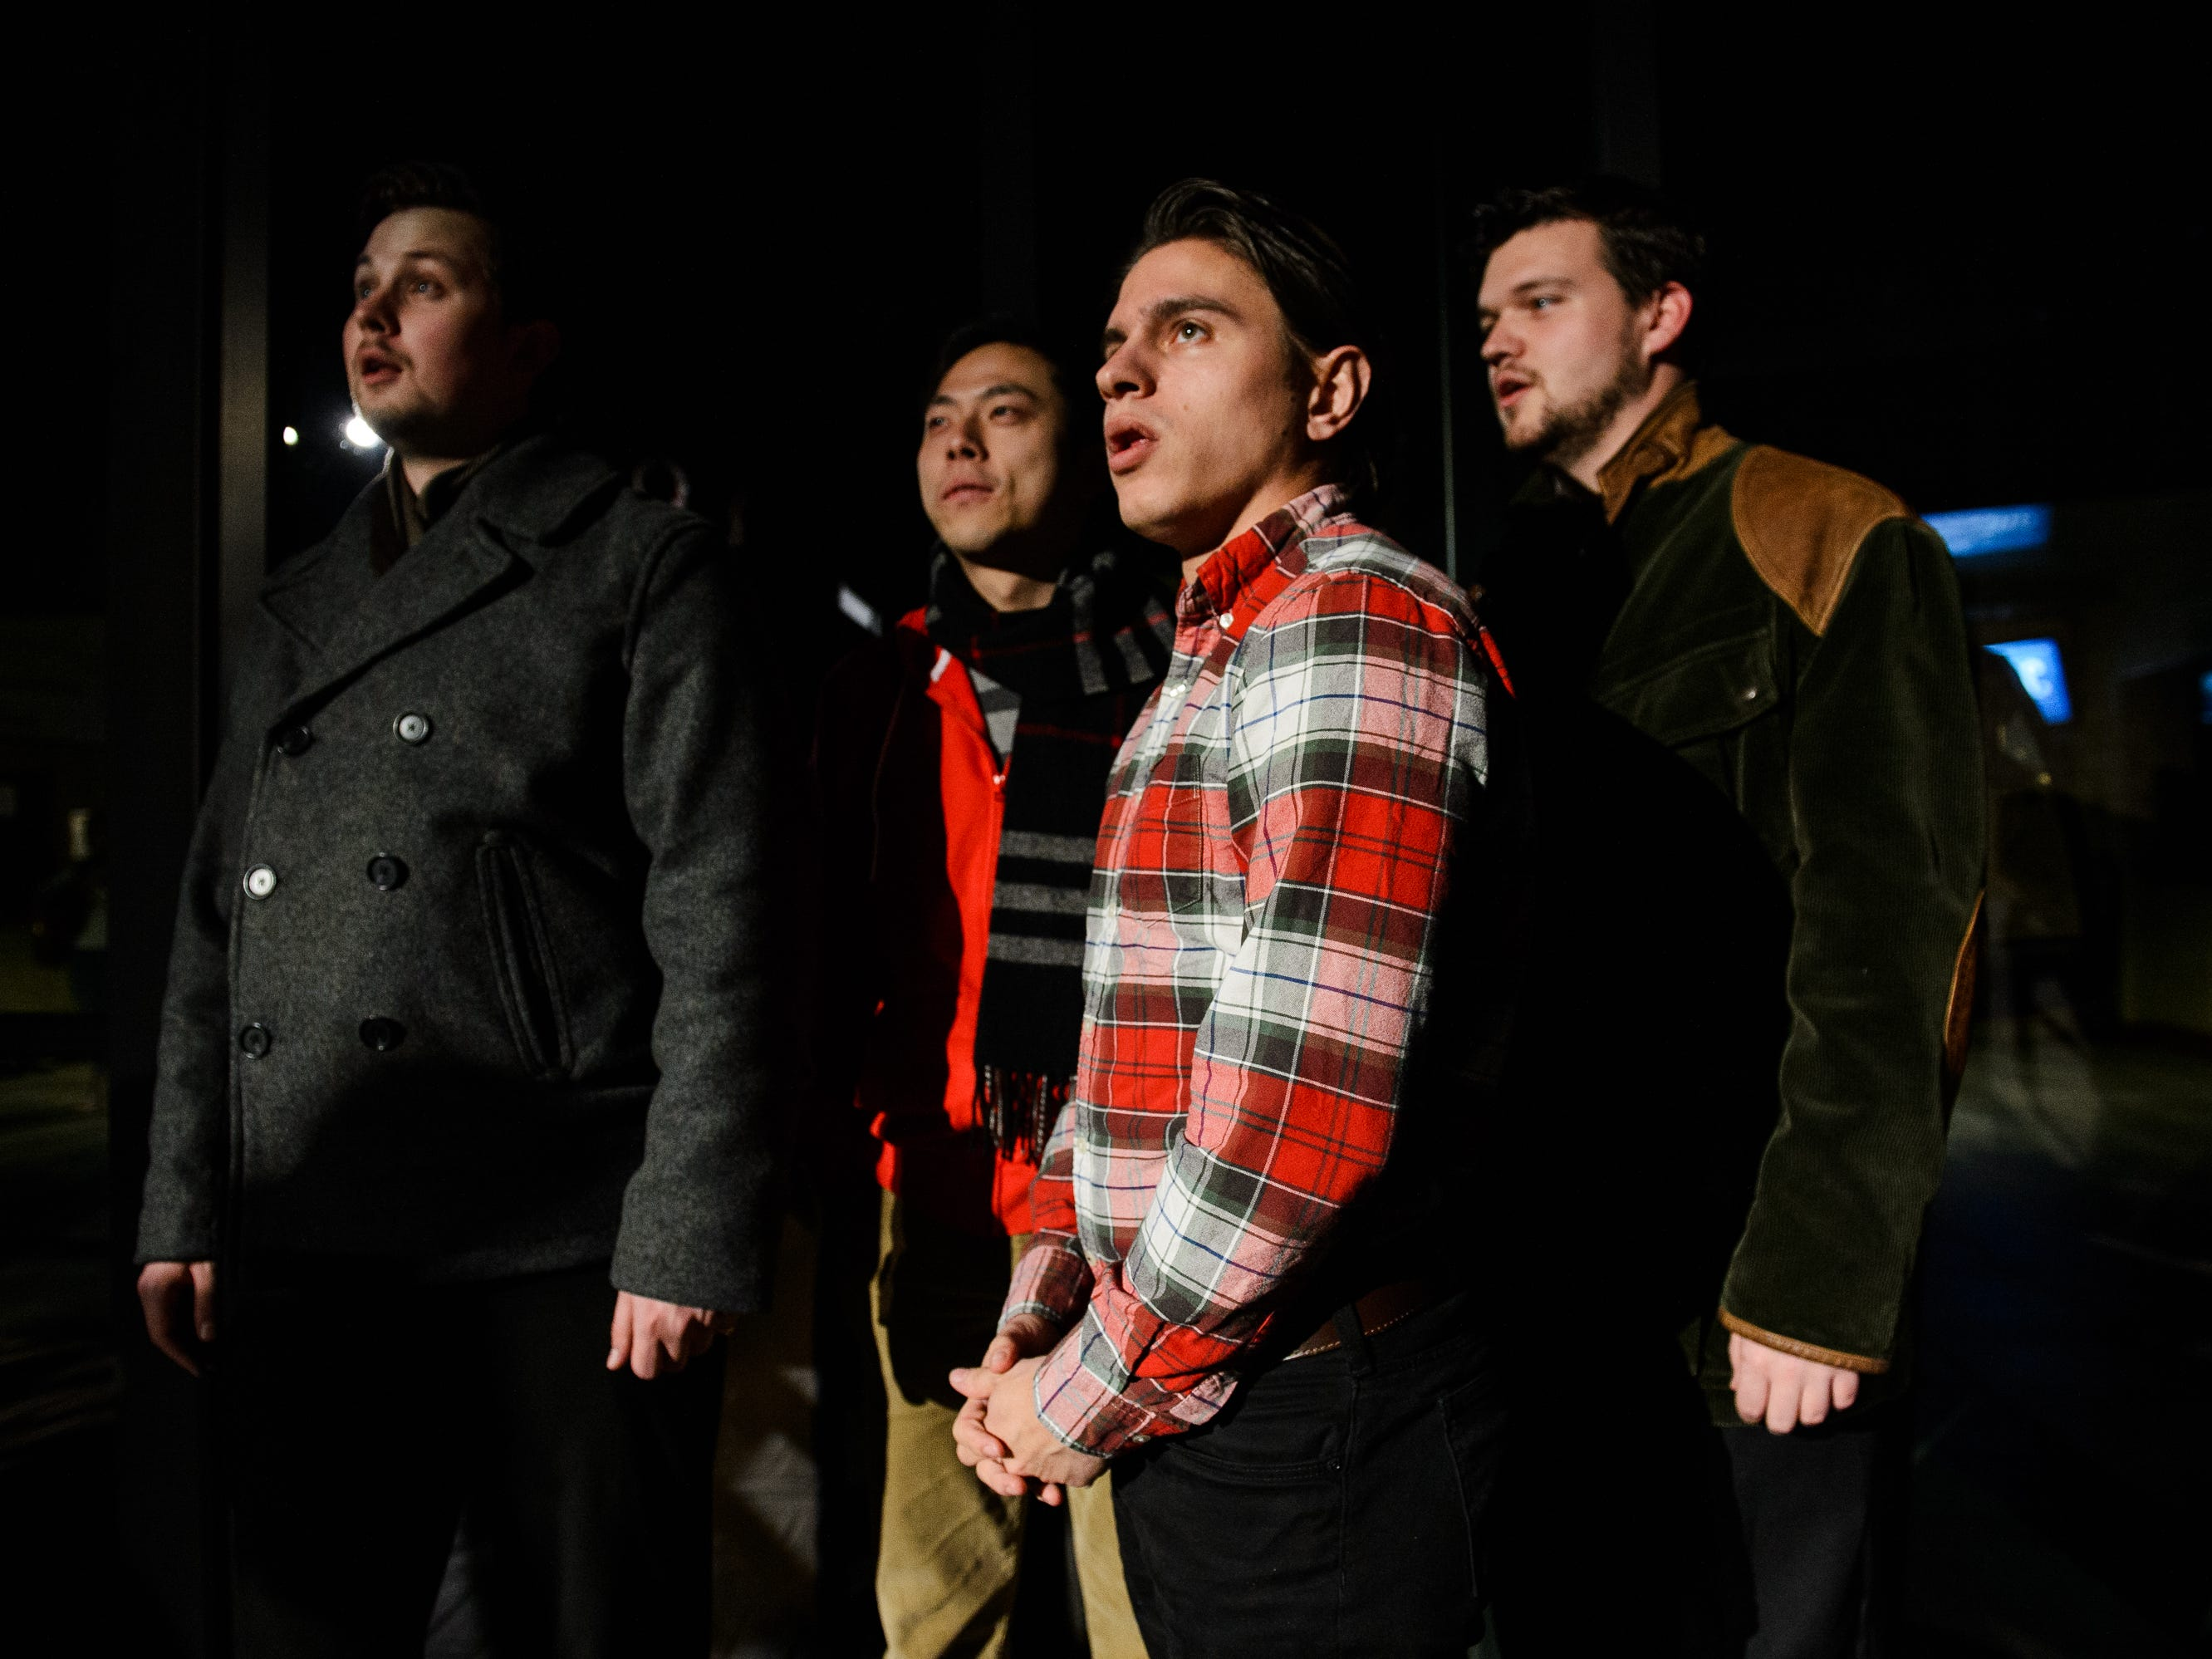 From left, Michael Seibert, Peter Xia, Jacob Martin and Joel Dupont sing along to a Christmas carol at Bob Jones University's annual Christmas Celebration on Friday, Nov. 30, 2018.